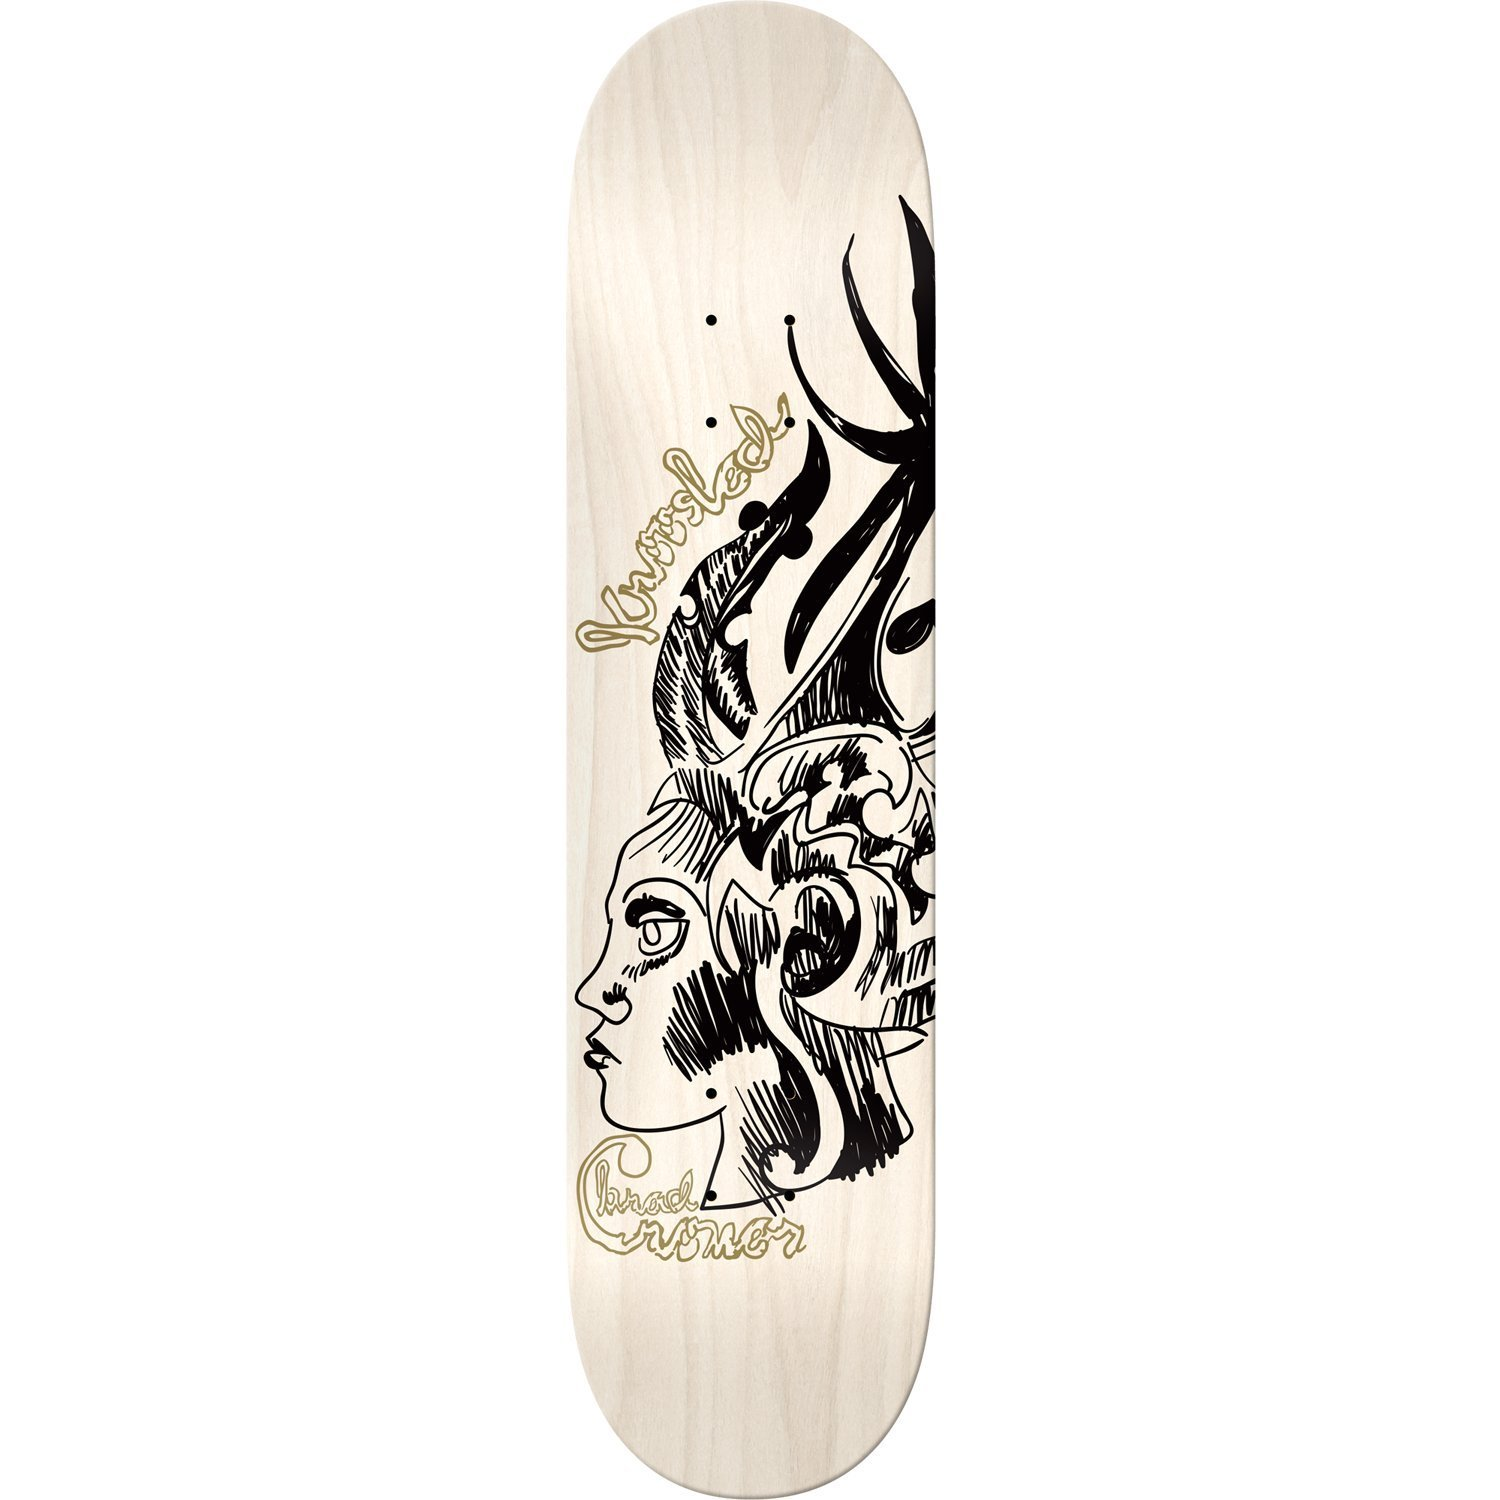 Krooked Brad Cromer Siren Deck 8.38 Assembled as COMPLETE Skateboard